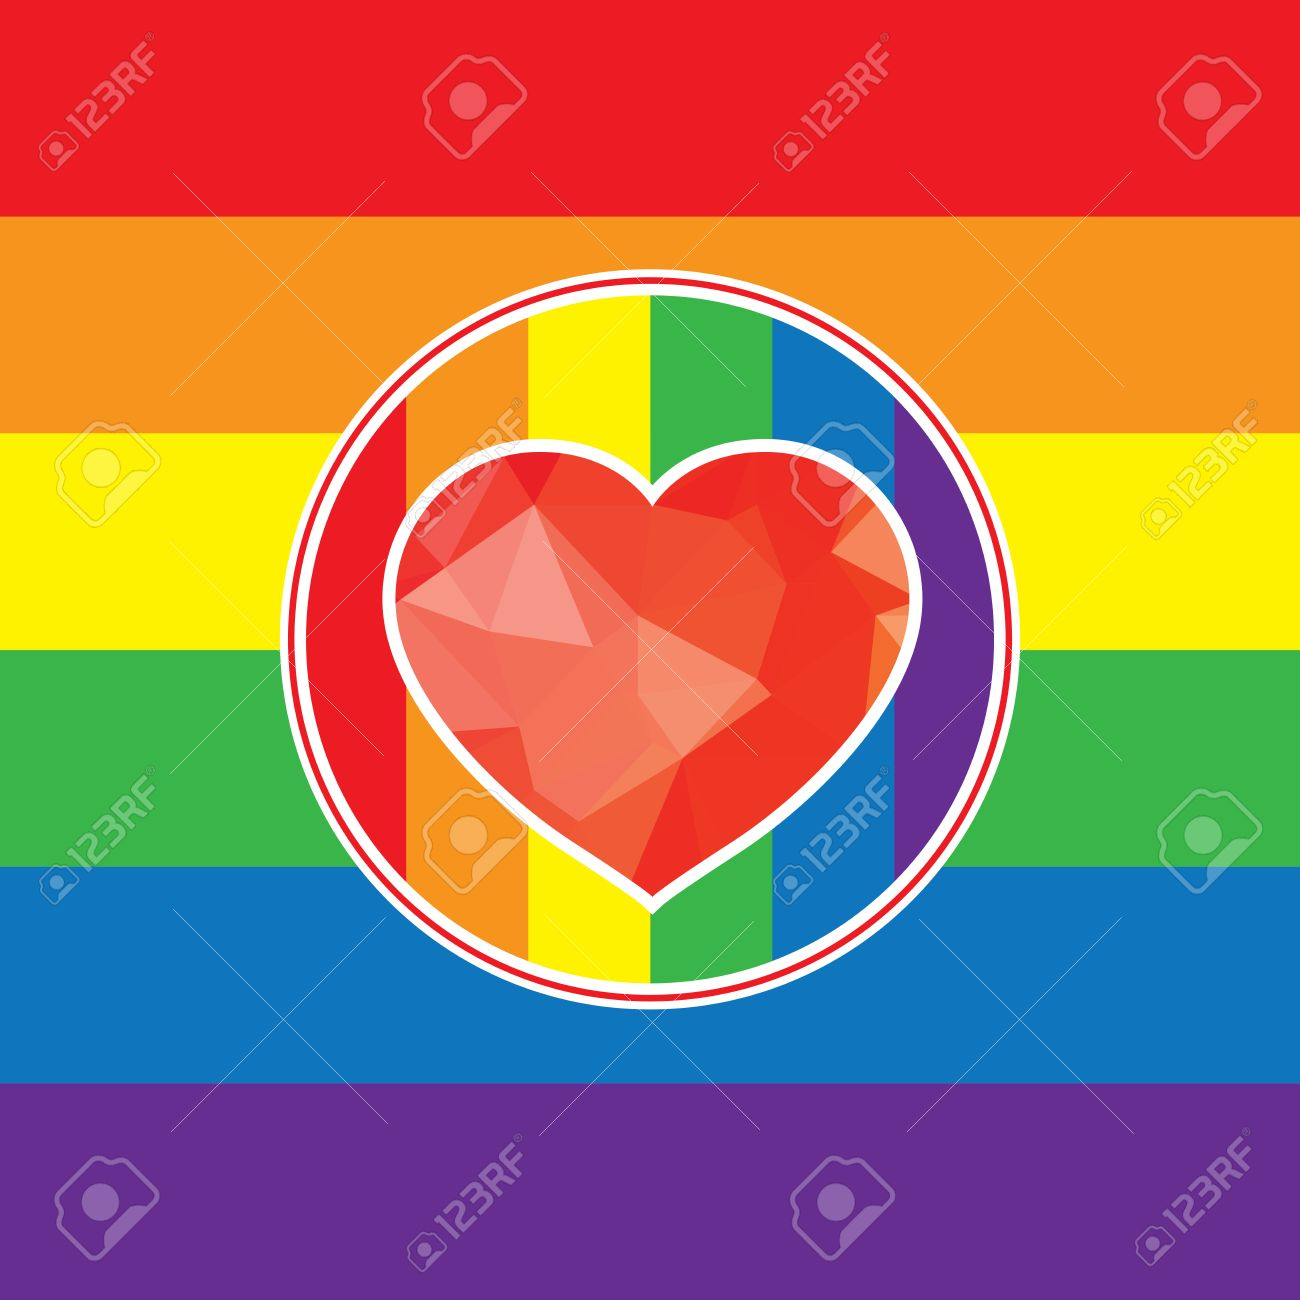 http://previews.123rf.com/images/monarazzii/monarazzii1507/monarazzii150700024/41883871-LGBT-Gay-love-concept-Rainbow-heart-icon-on-rainbow-background--Stock-Vector